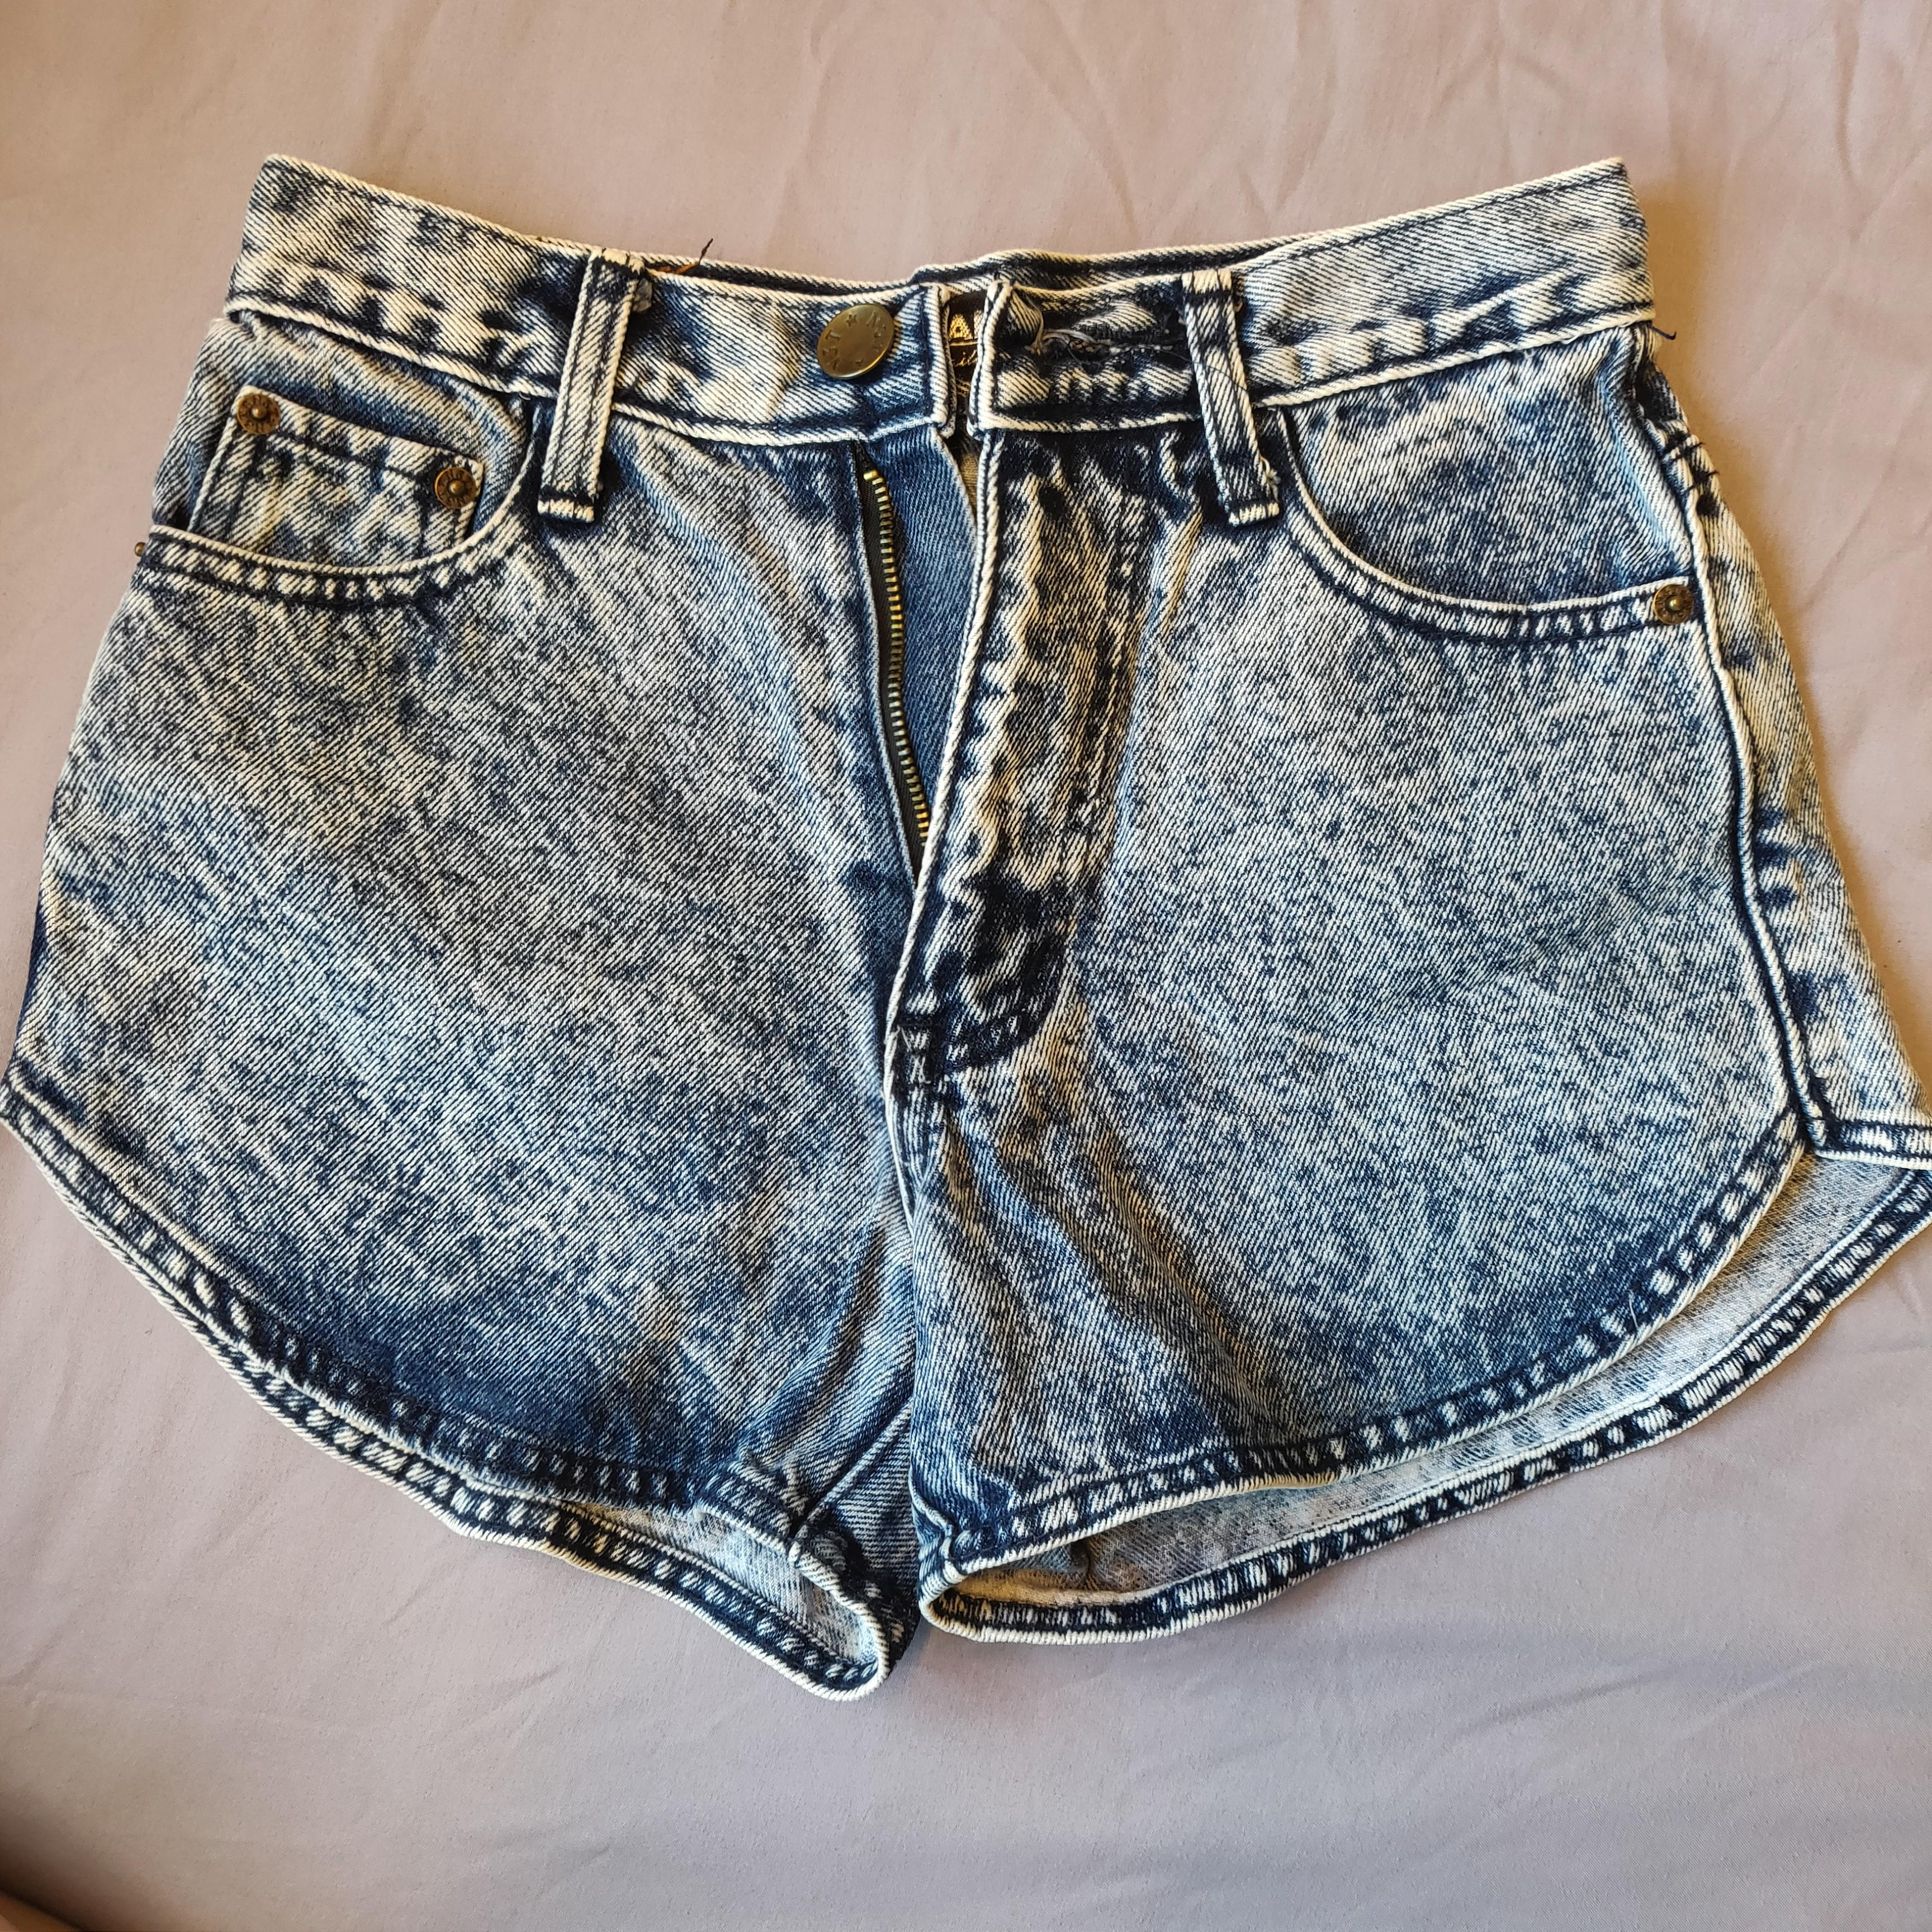 Highwaist Curved Acid wash Shorts, Women's Fashion, Clothes